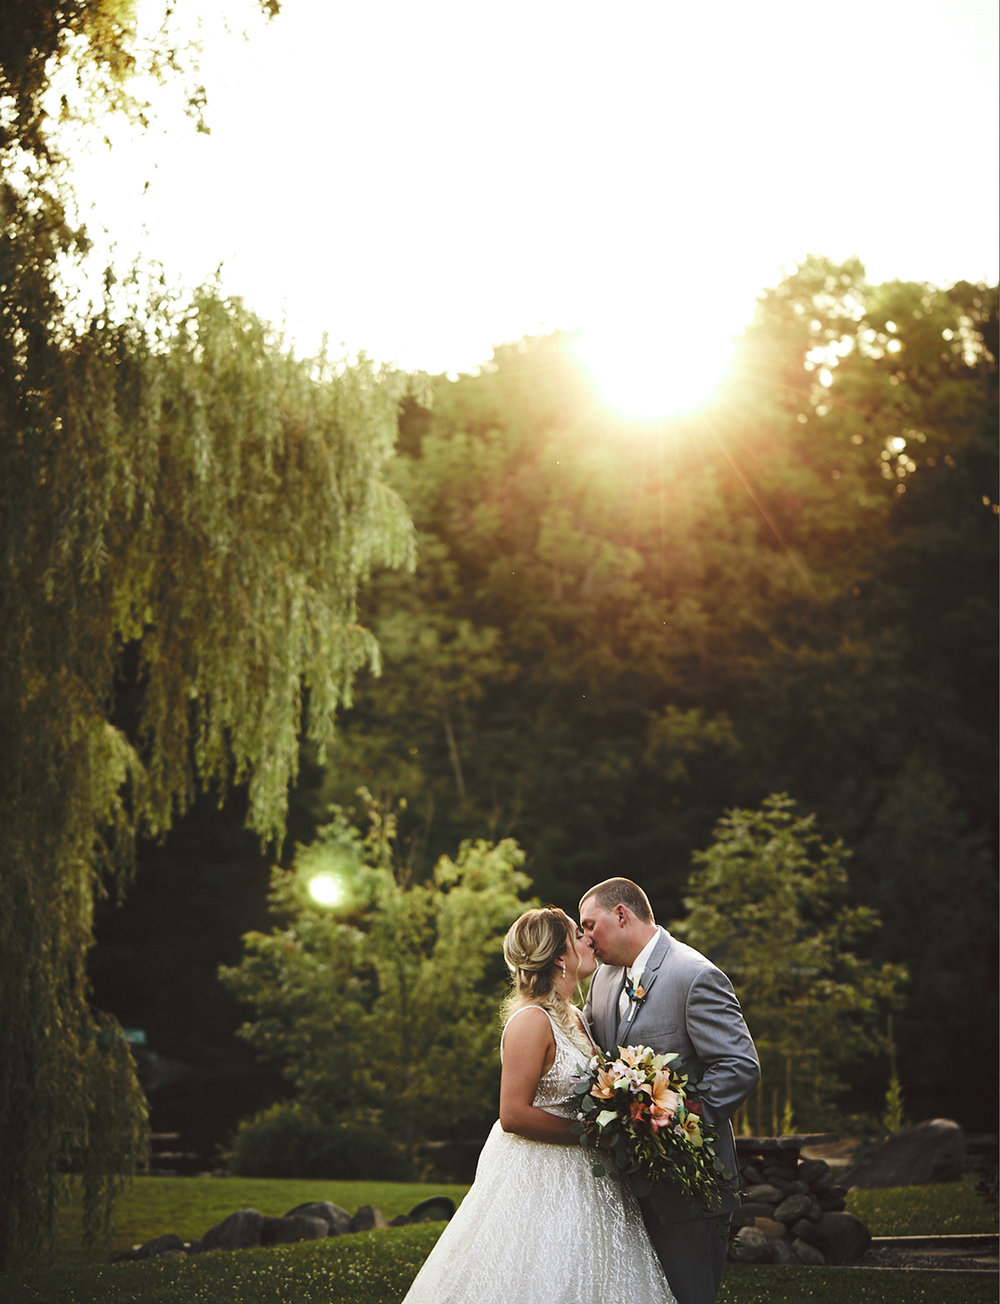 180811_RosebudEstatesWeddingPhotography_WesternNYWeddingPhotographer_By_BriJohnsonWeddings_0167.jpg